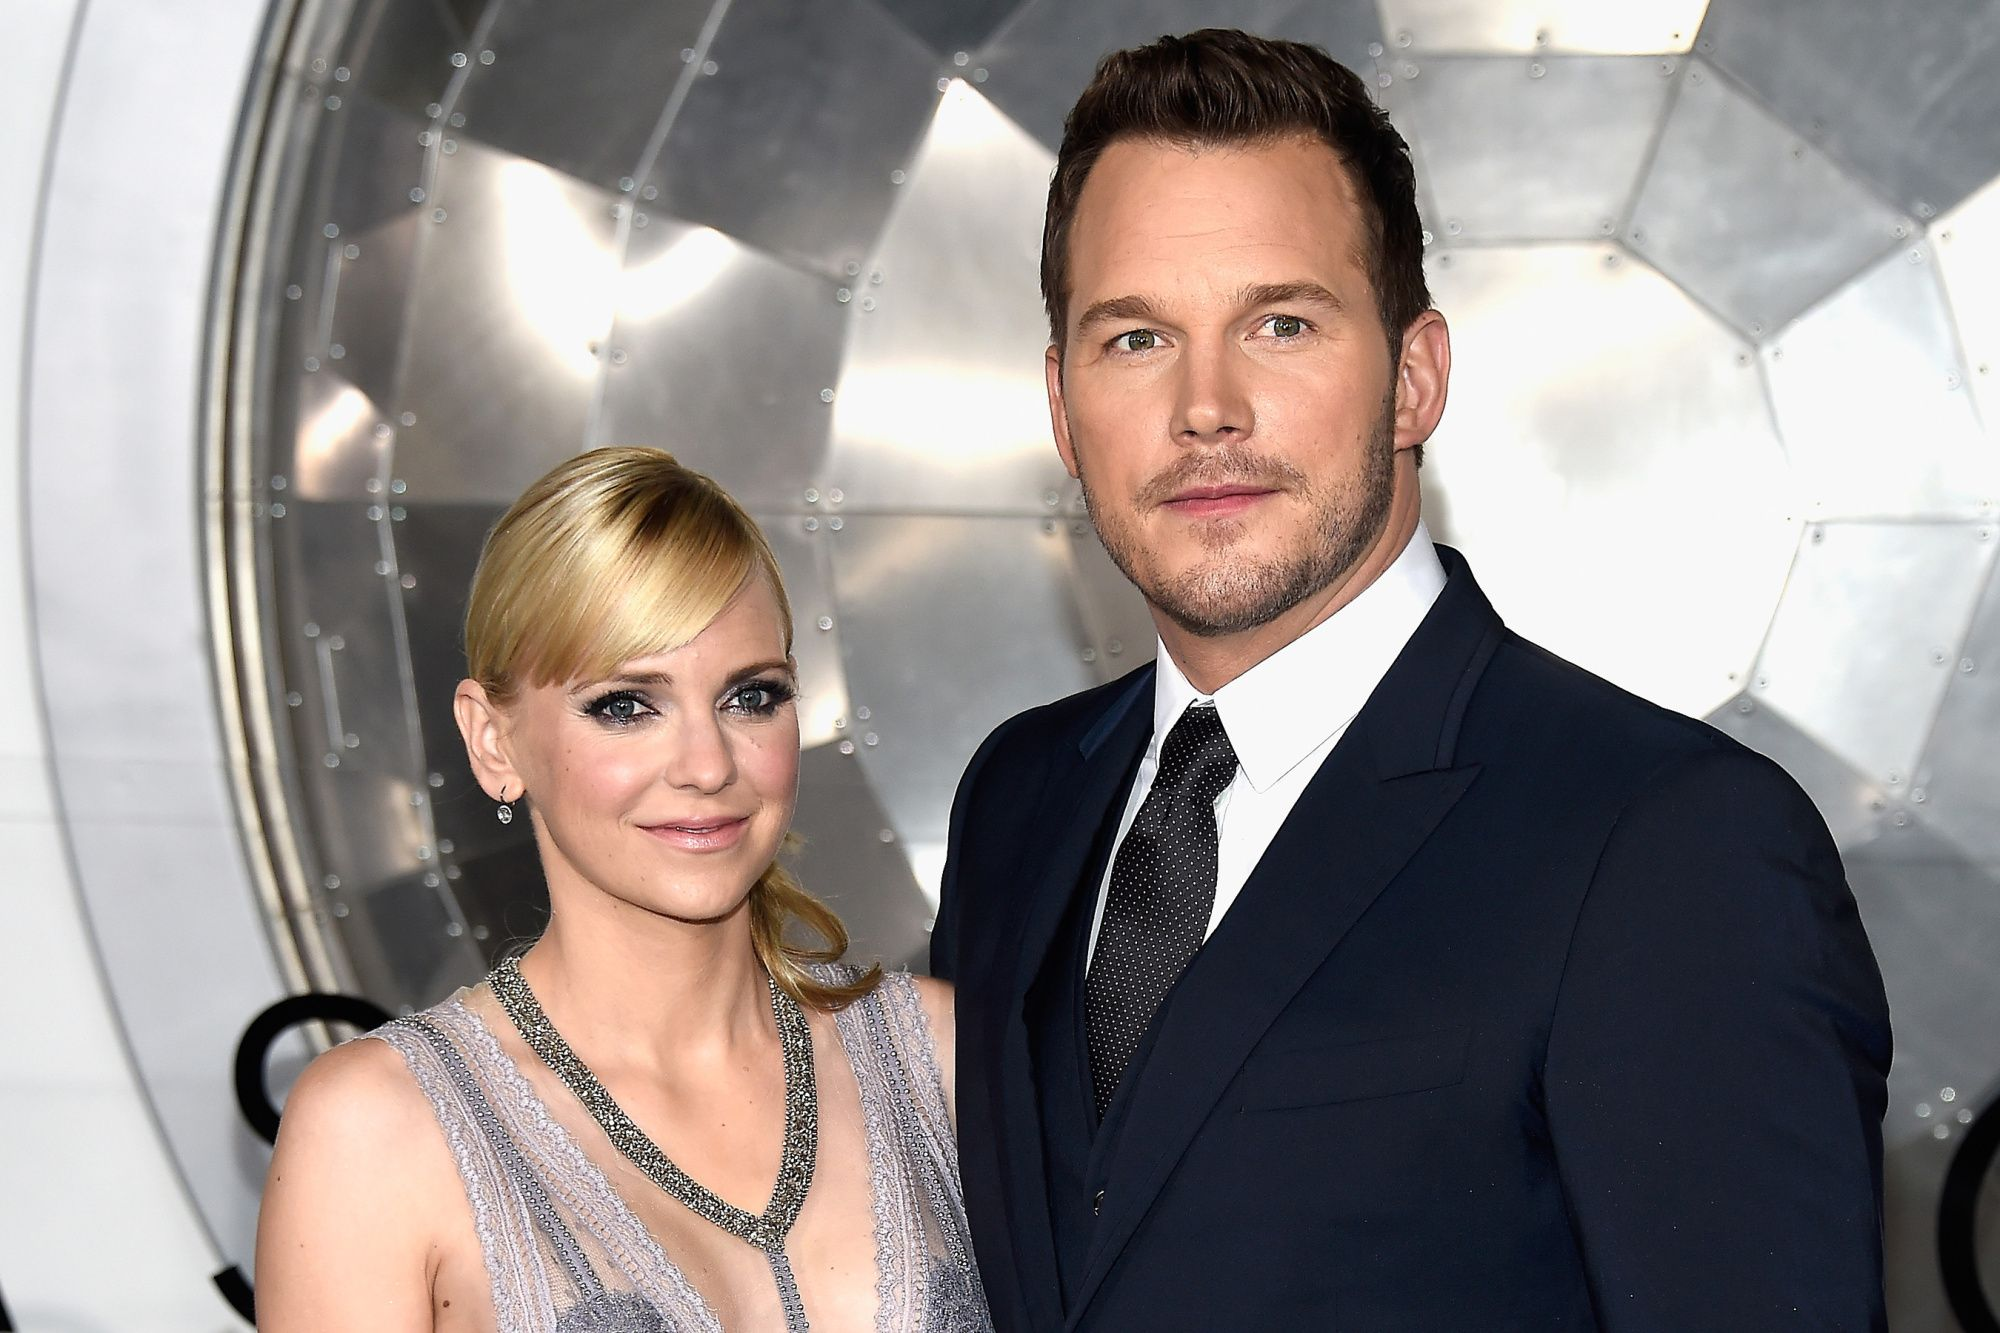 """Anna Faris and Chris Pratt at the premiere of """"Passengers"""" in 2016 in California   Source: Getty Images"""